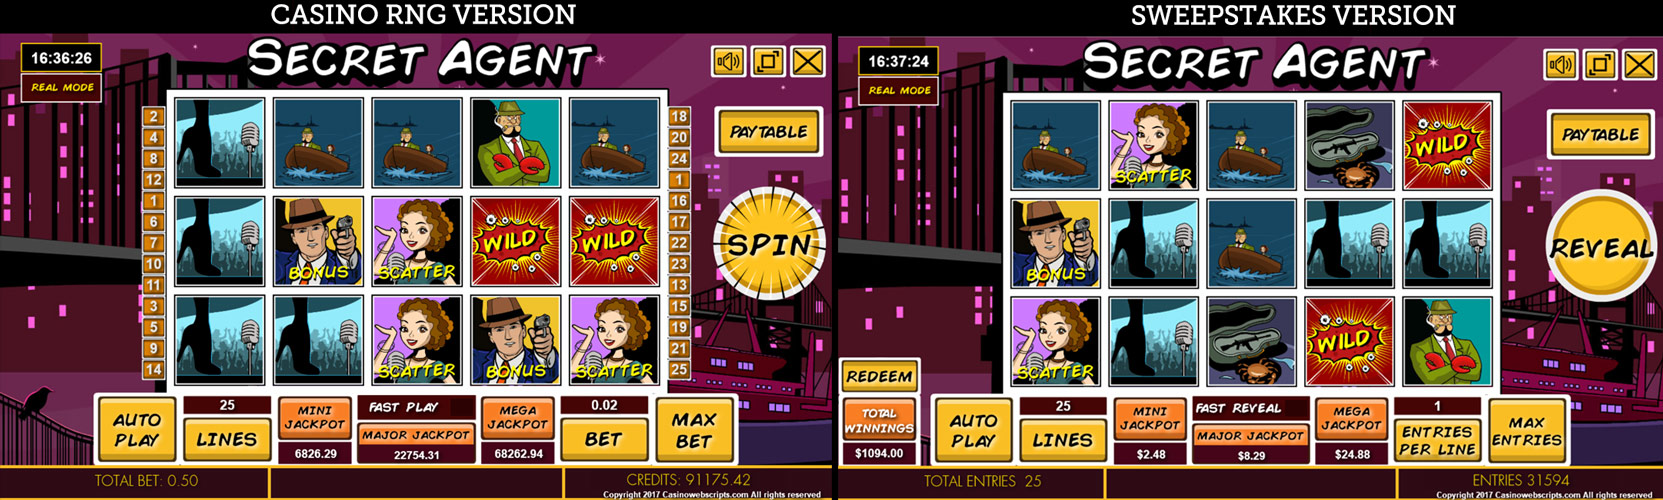 Casino game compared to Sweepstakes game